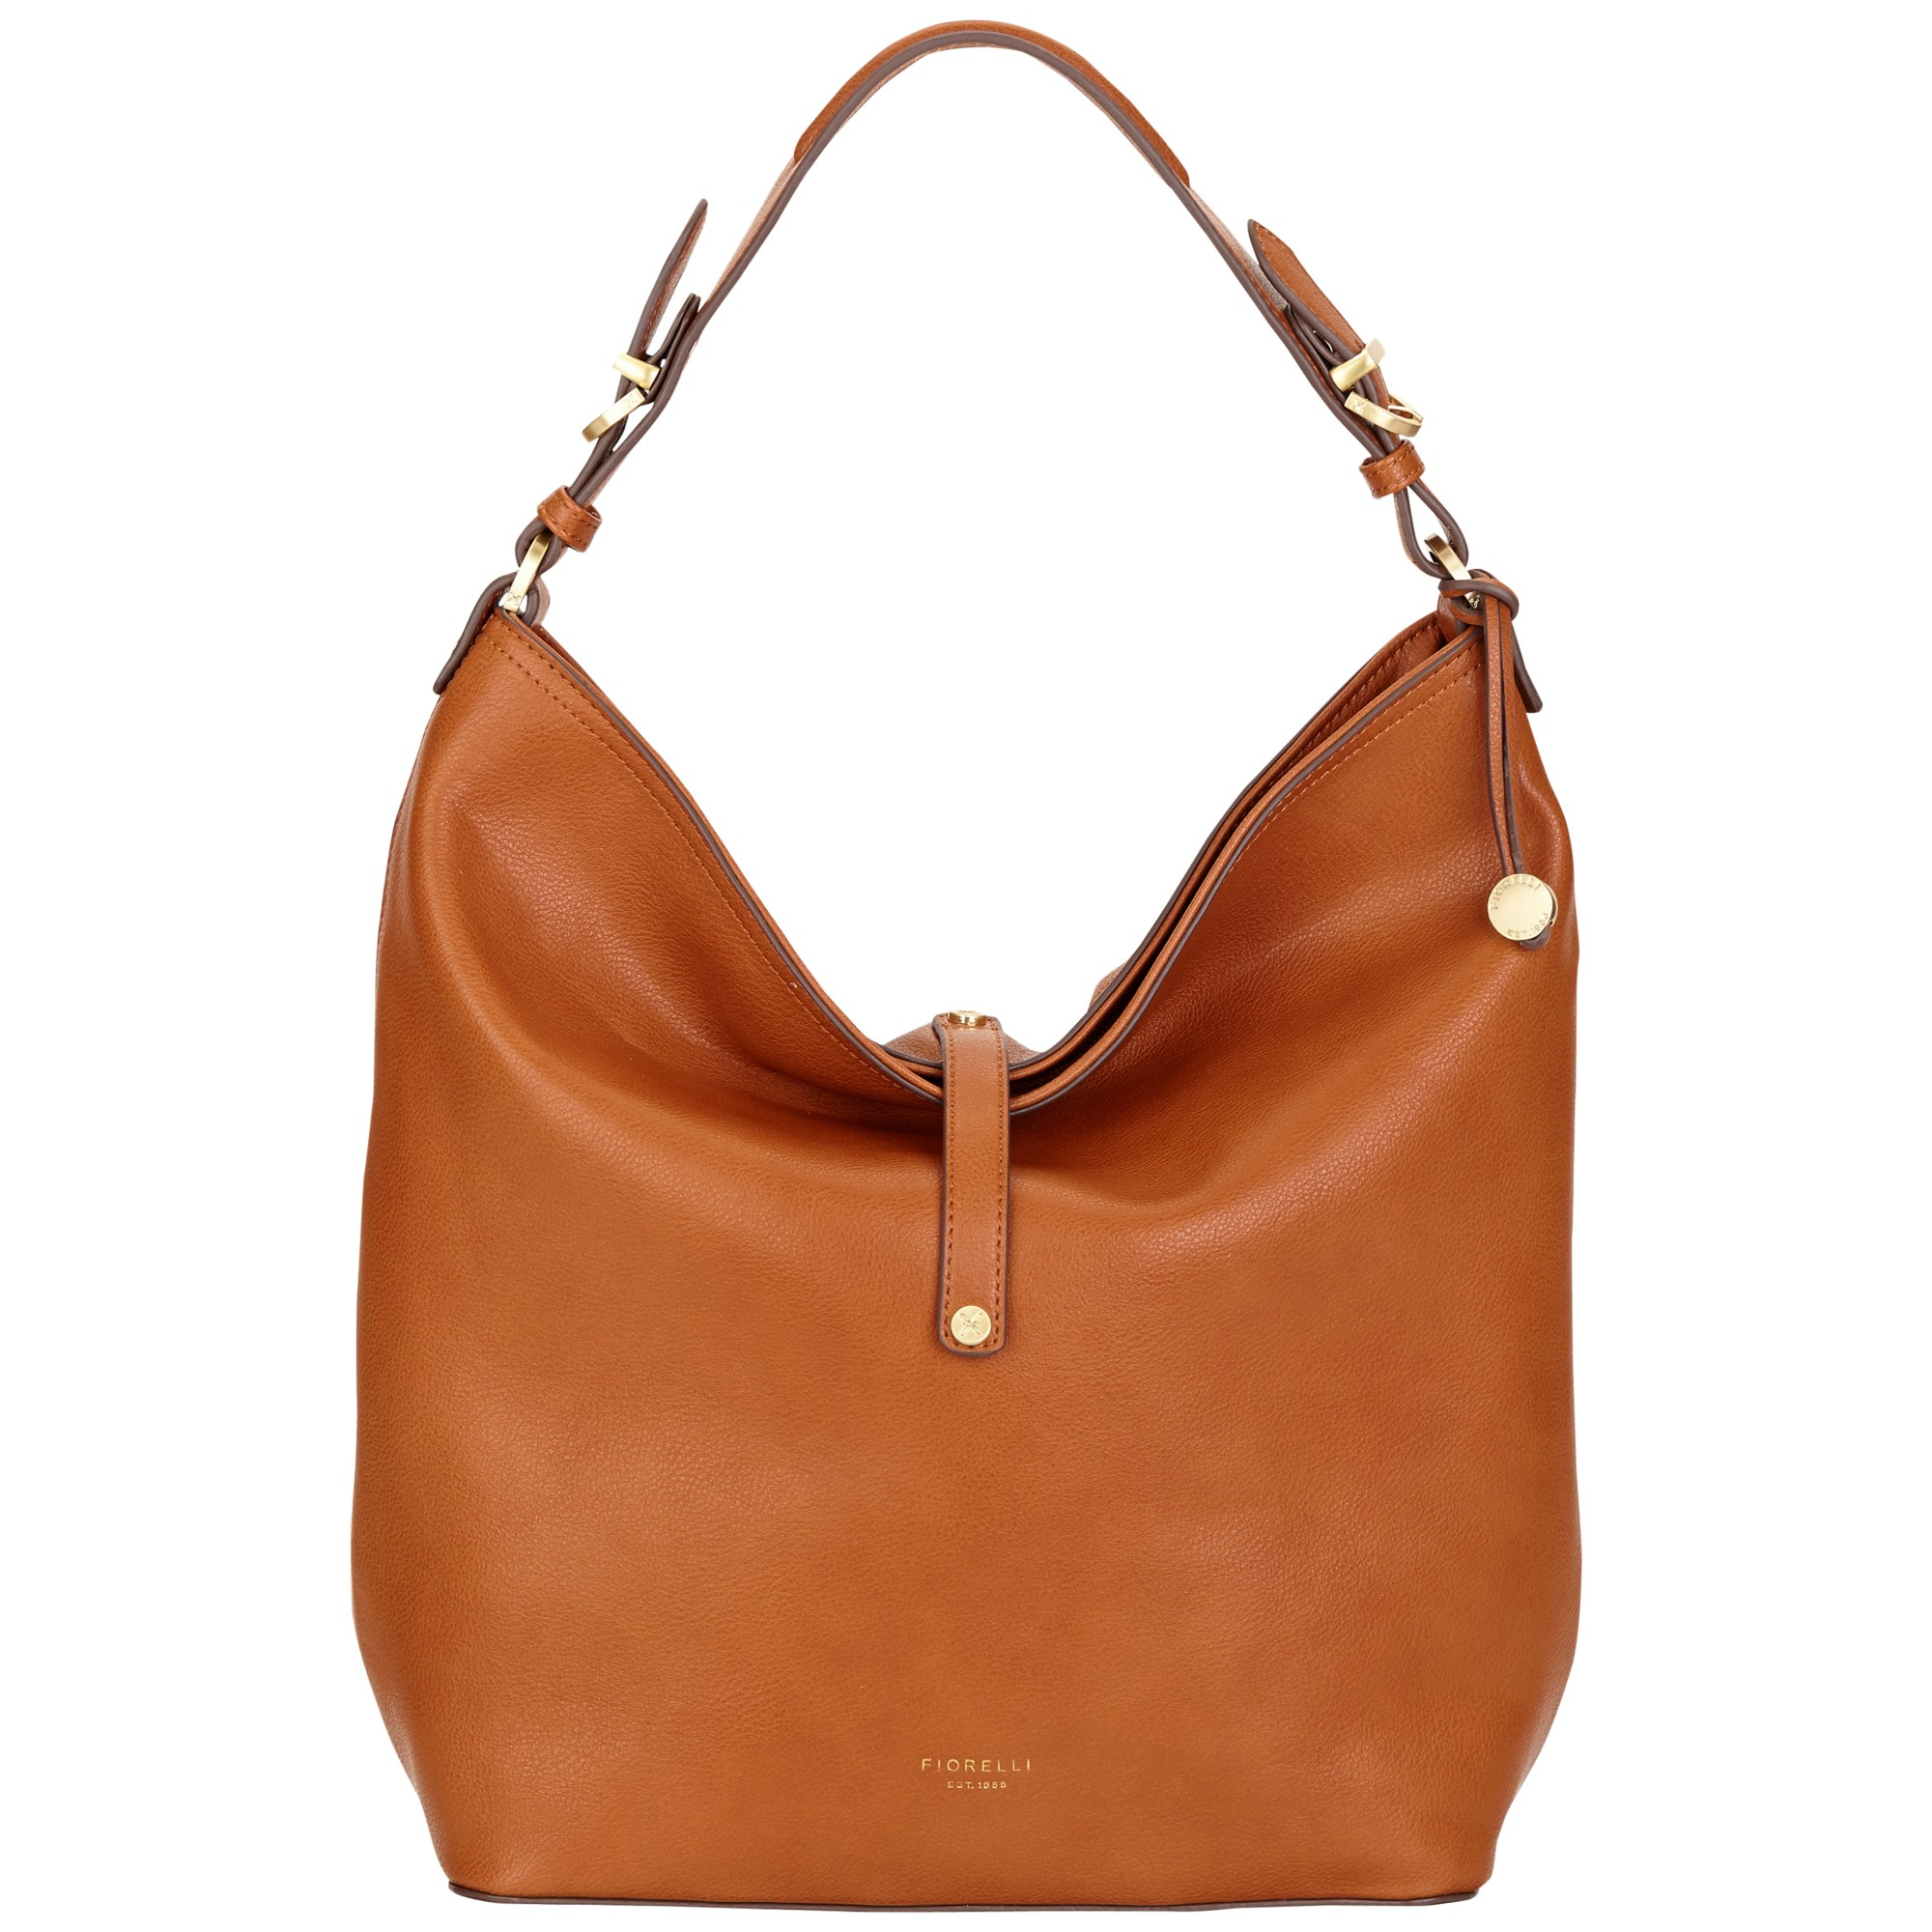 Fiorelli Nina Hobo Bag in Brown | Lyst